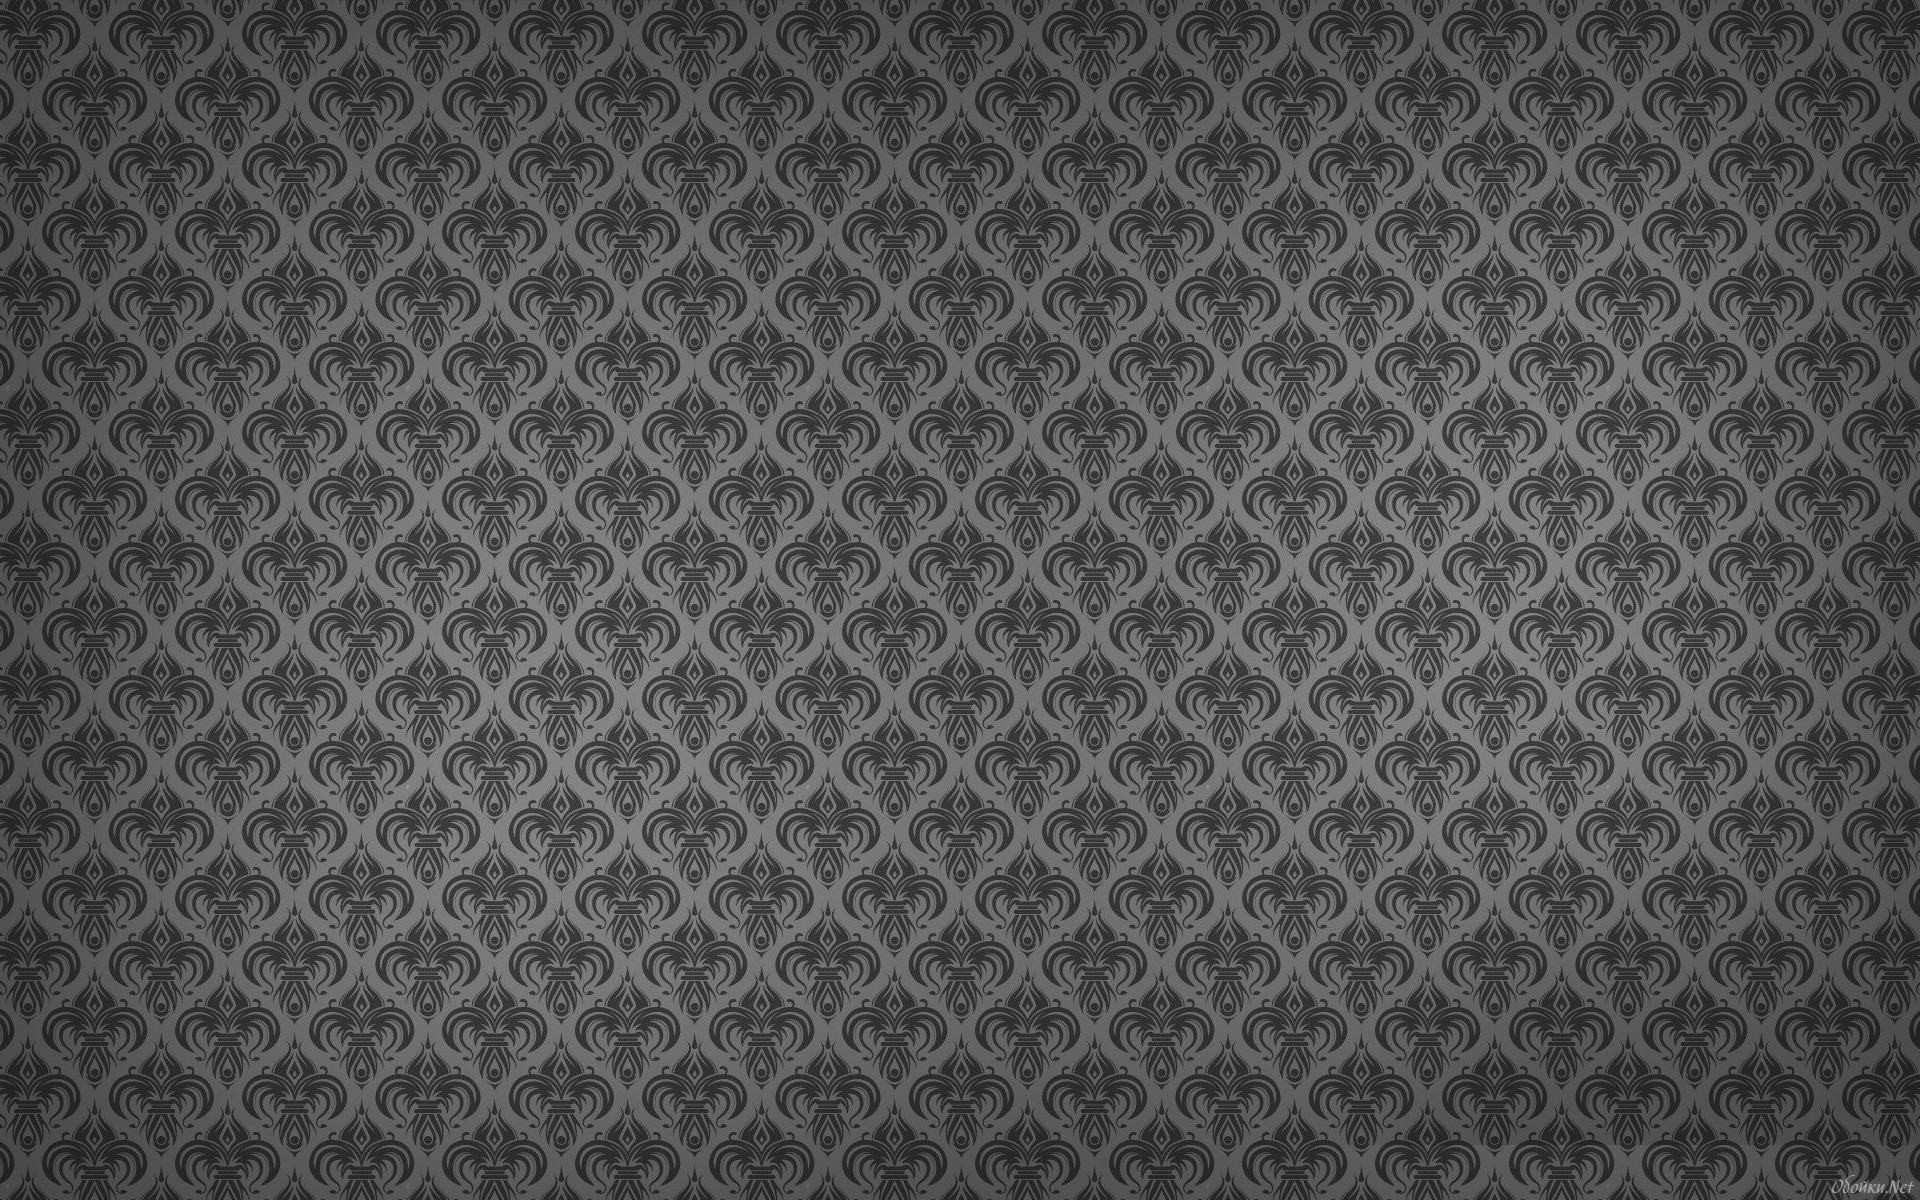 template, texture, background for website, ornament texture, download photo, background